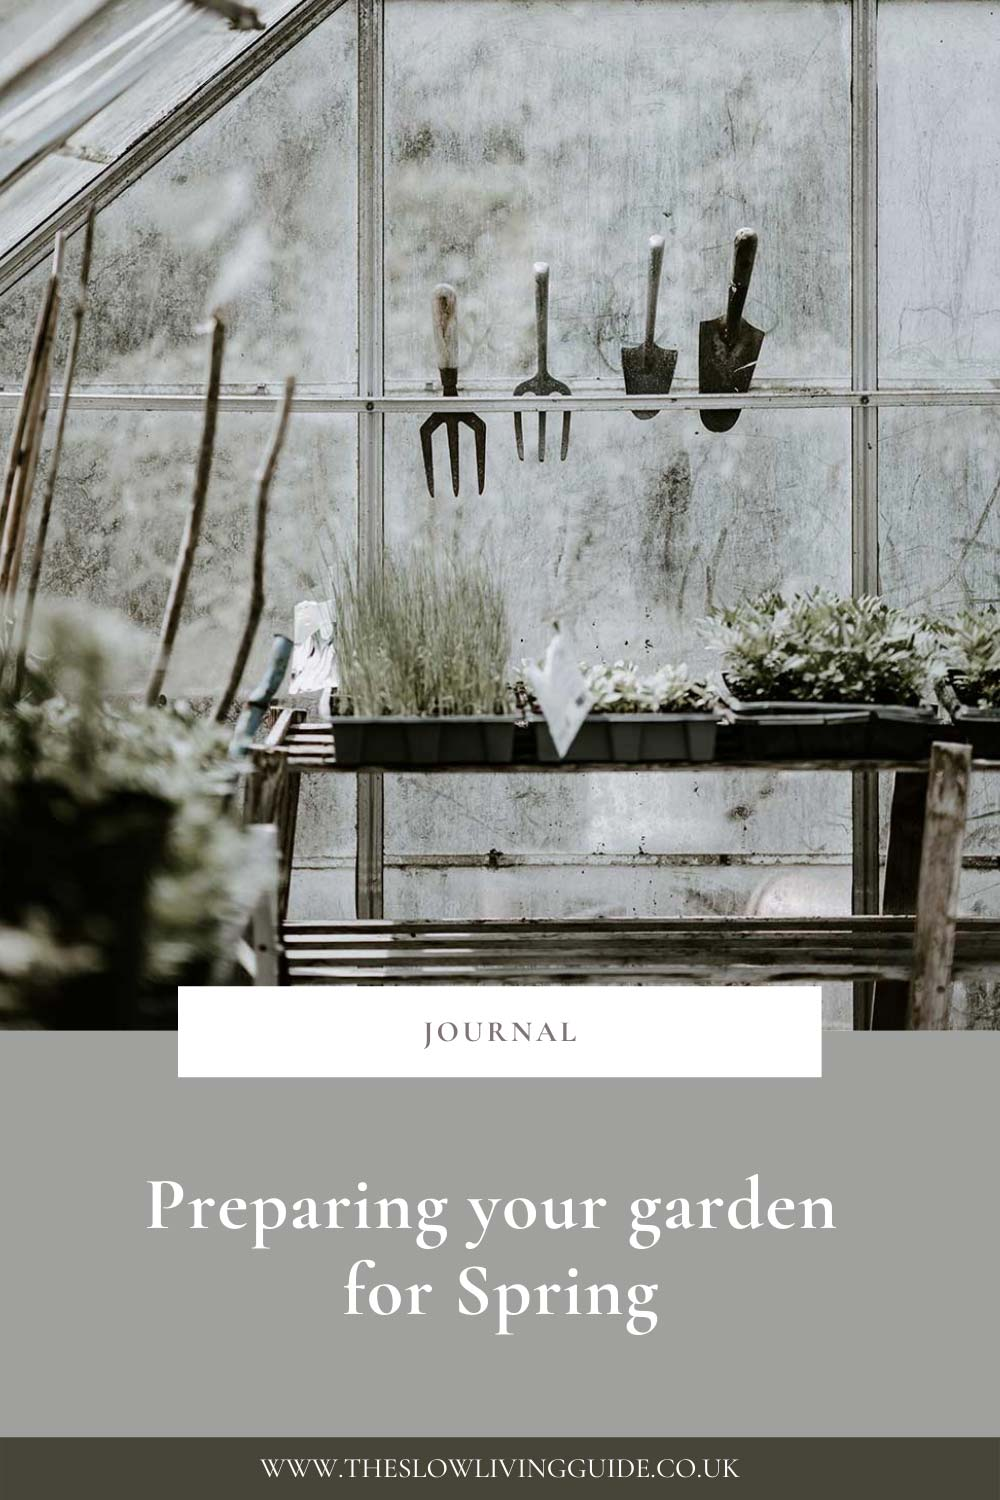 a greenhouse with garden tools - preparing for spring